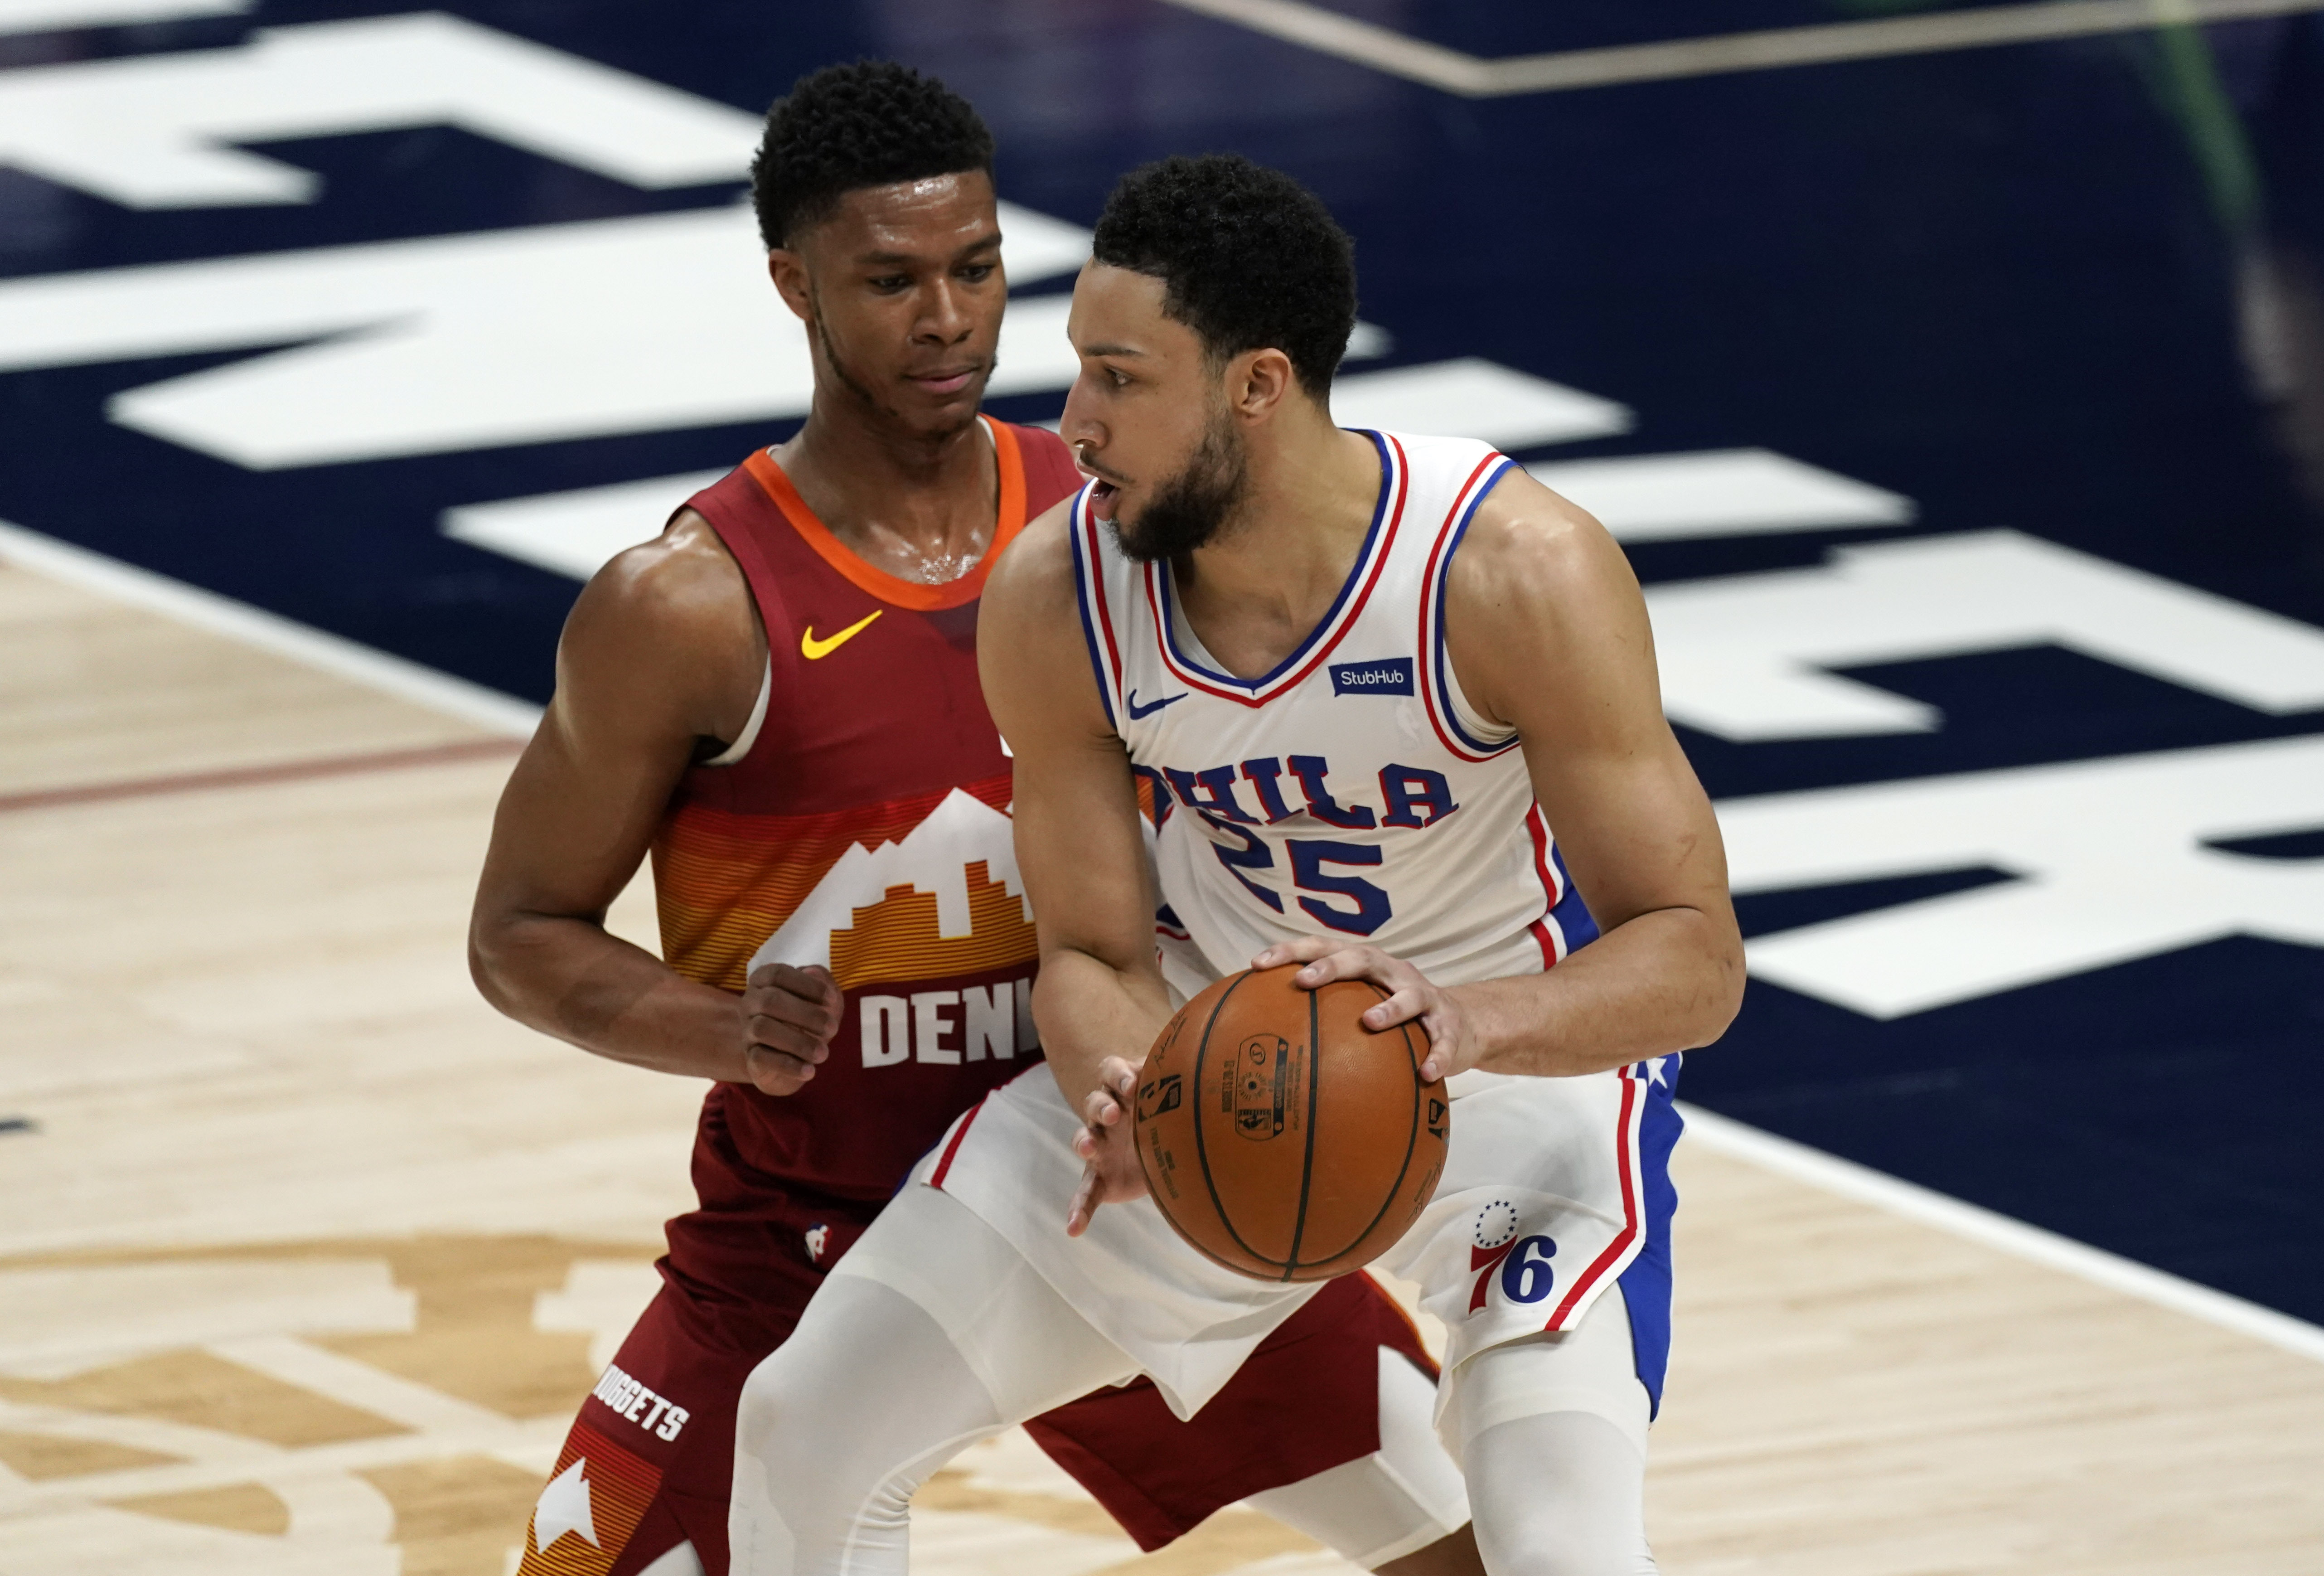 Philadelphia 76ers guard Ben Simmons, front, moves to the rim as Denver Nuggets guard PJ Dozier defends in the first half of an NBA basketball game Tuesday, March 30, 2021, in Denver.